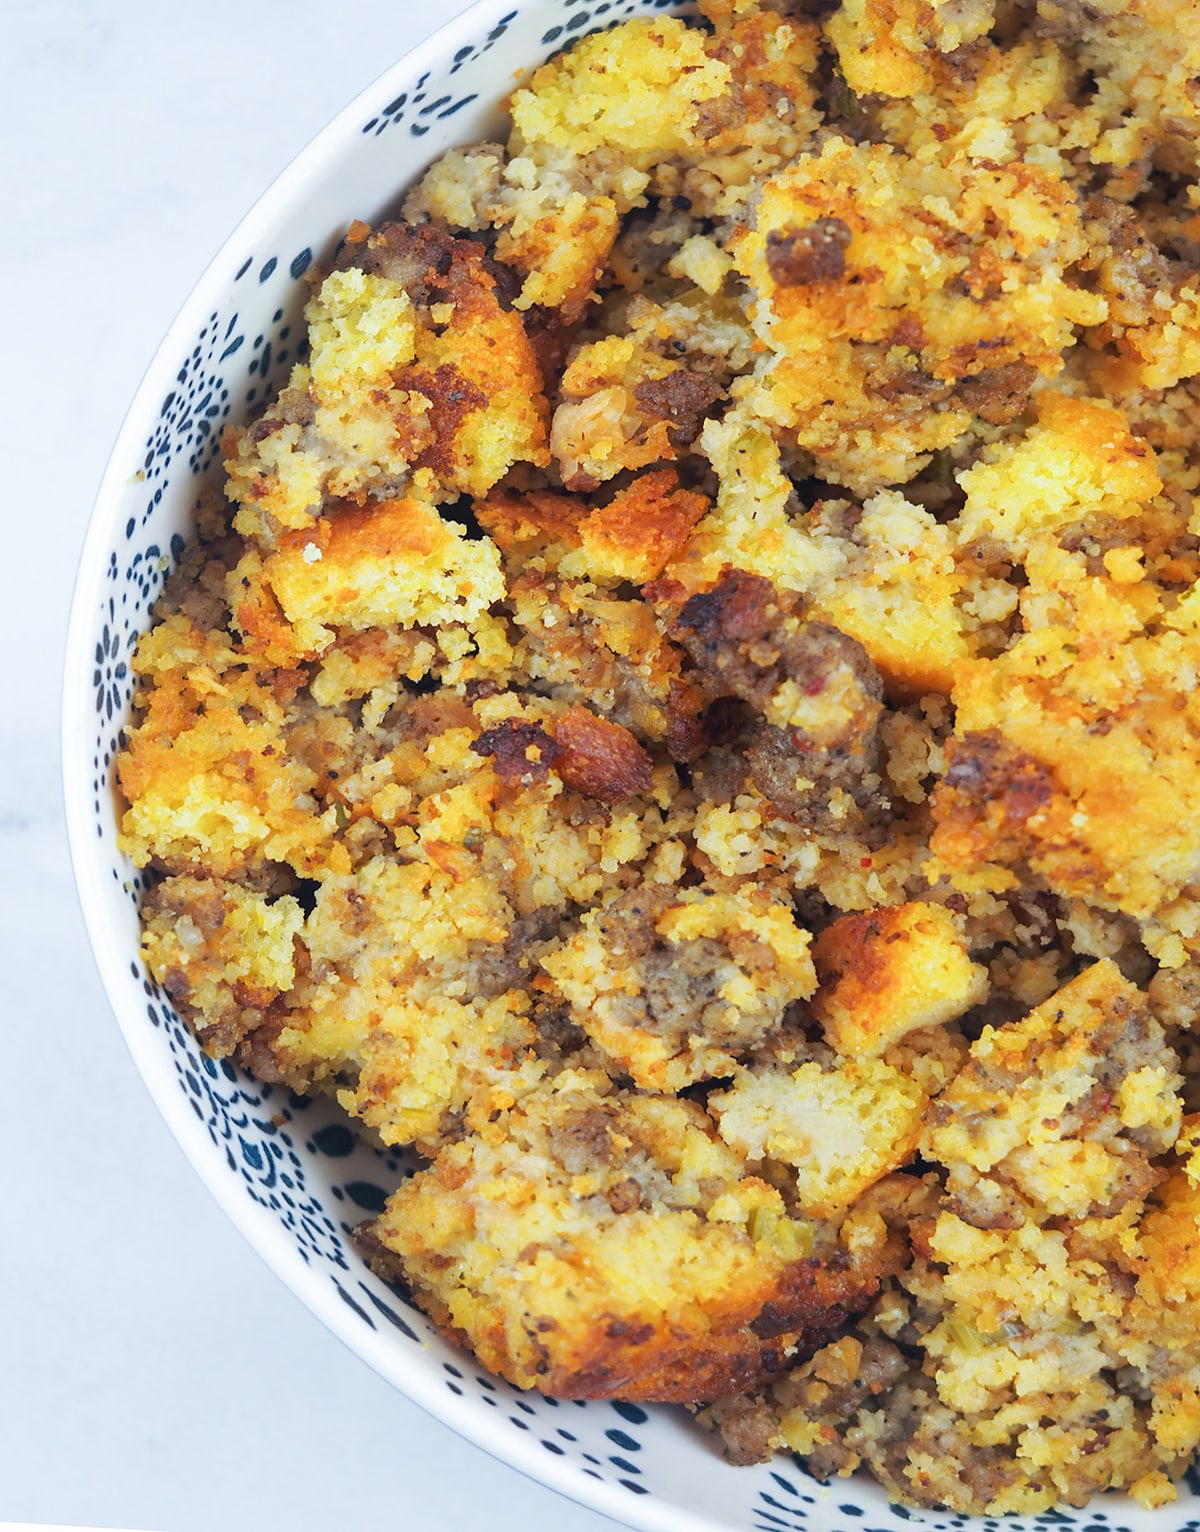 overhead close view of cornbread stuffing in white bowl with blue stamped pattern